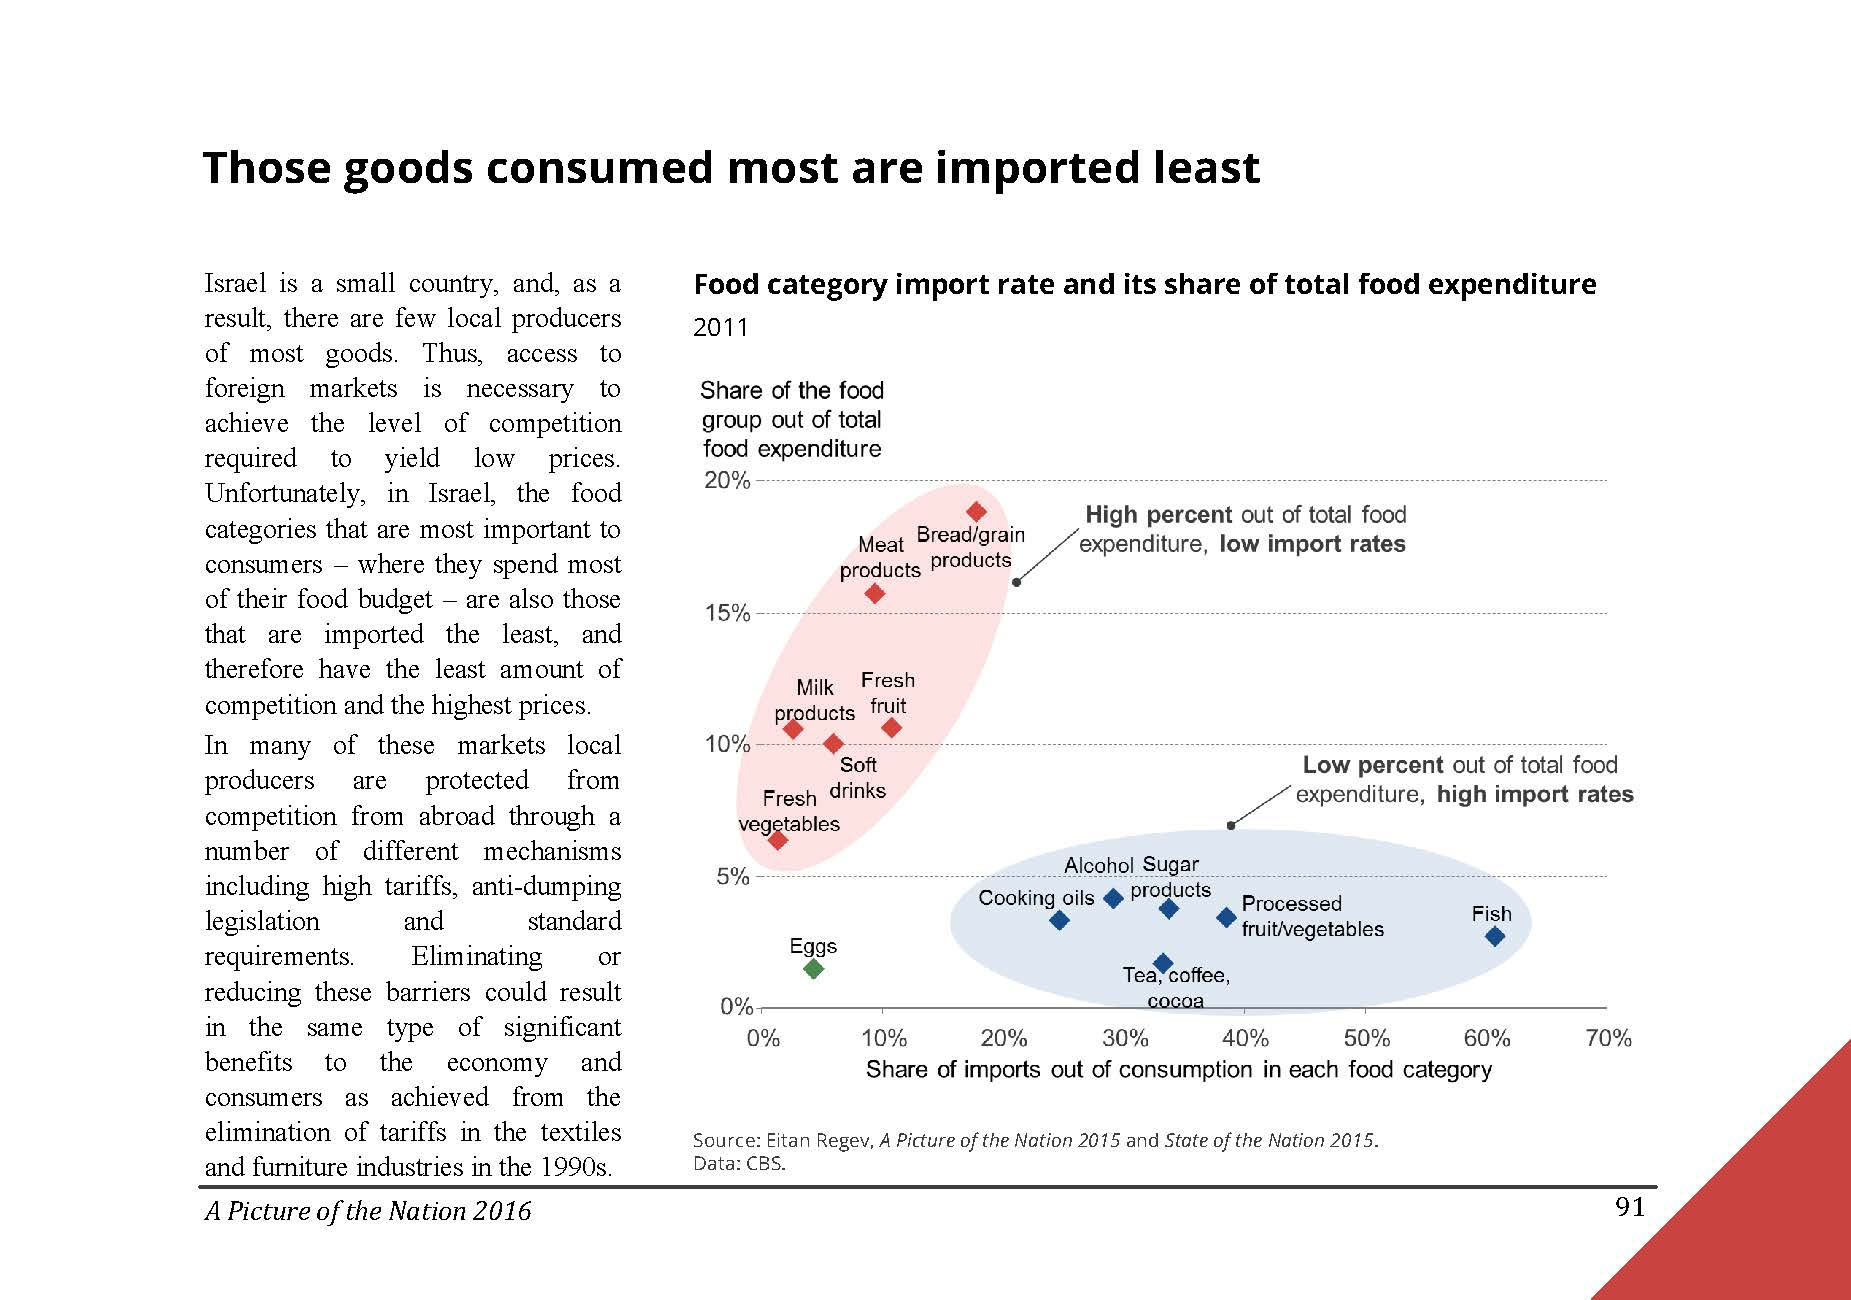 Those goods consumed most in Israel are imported least